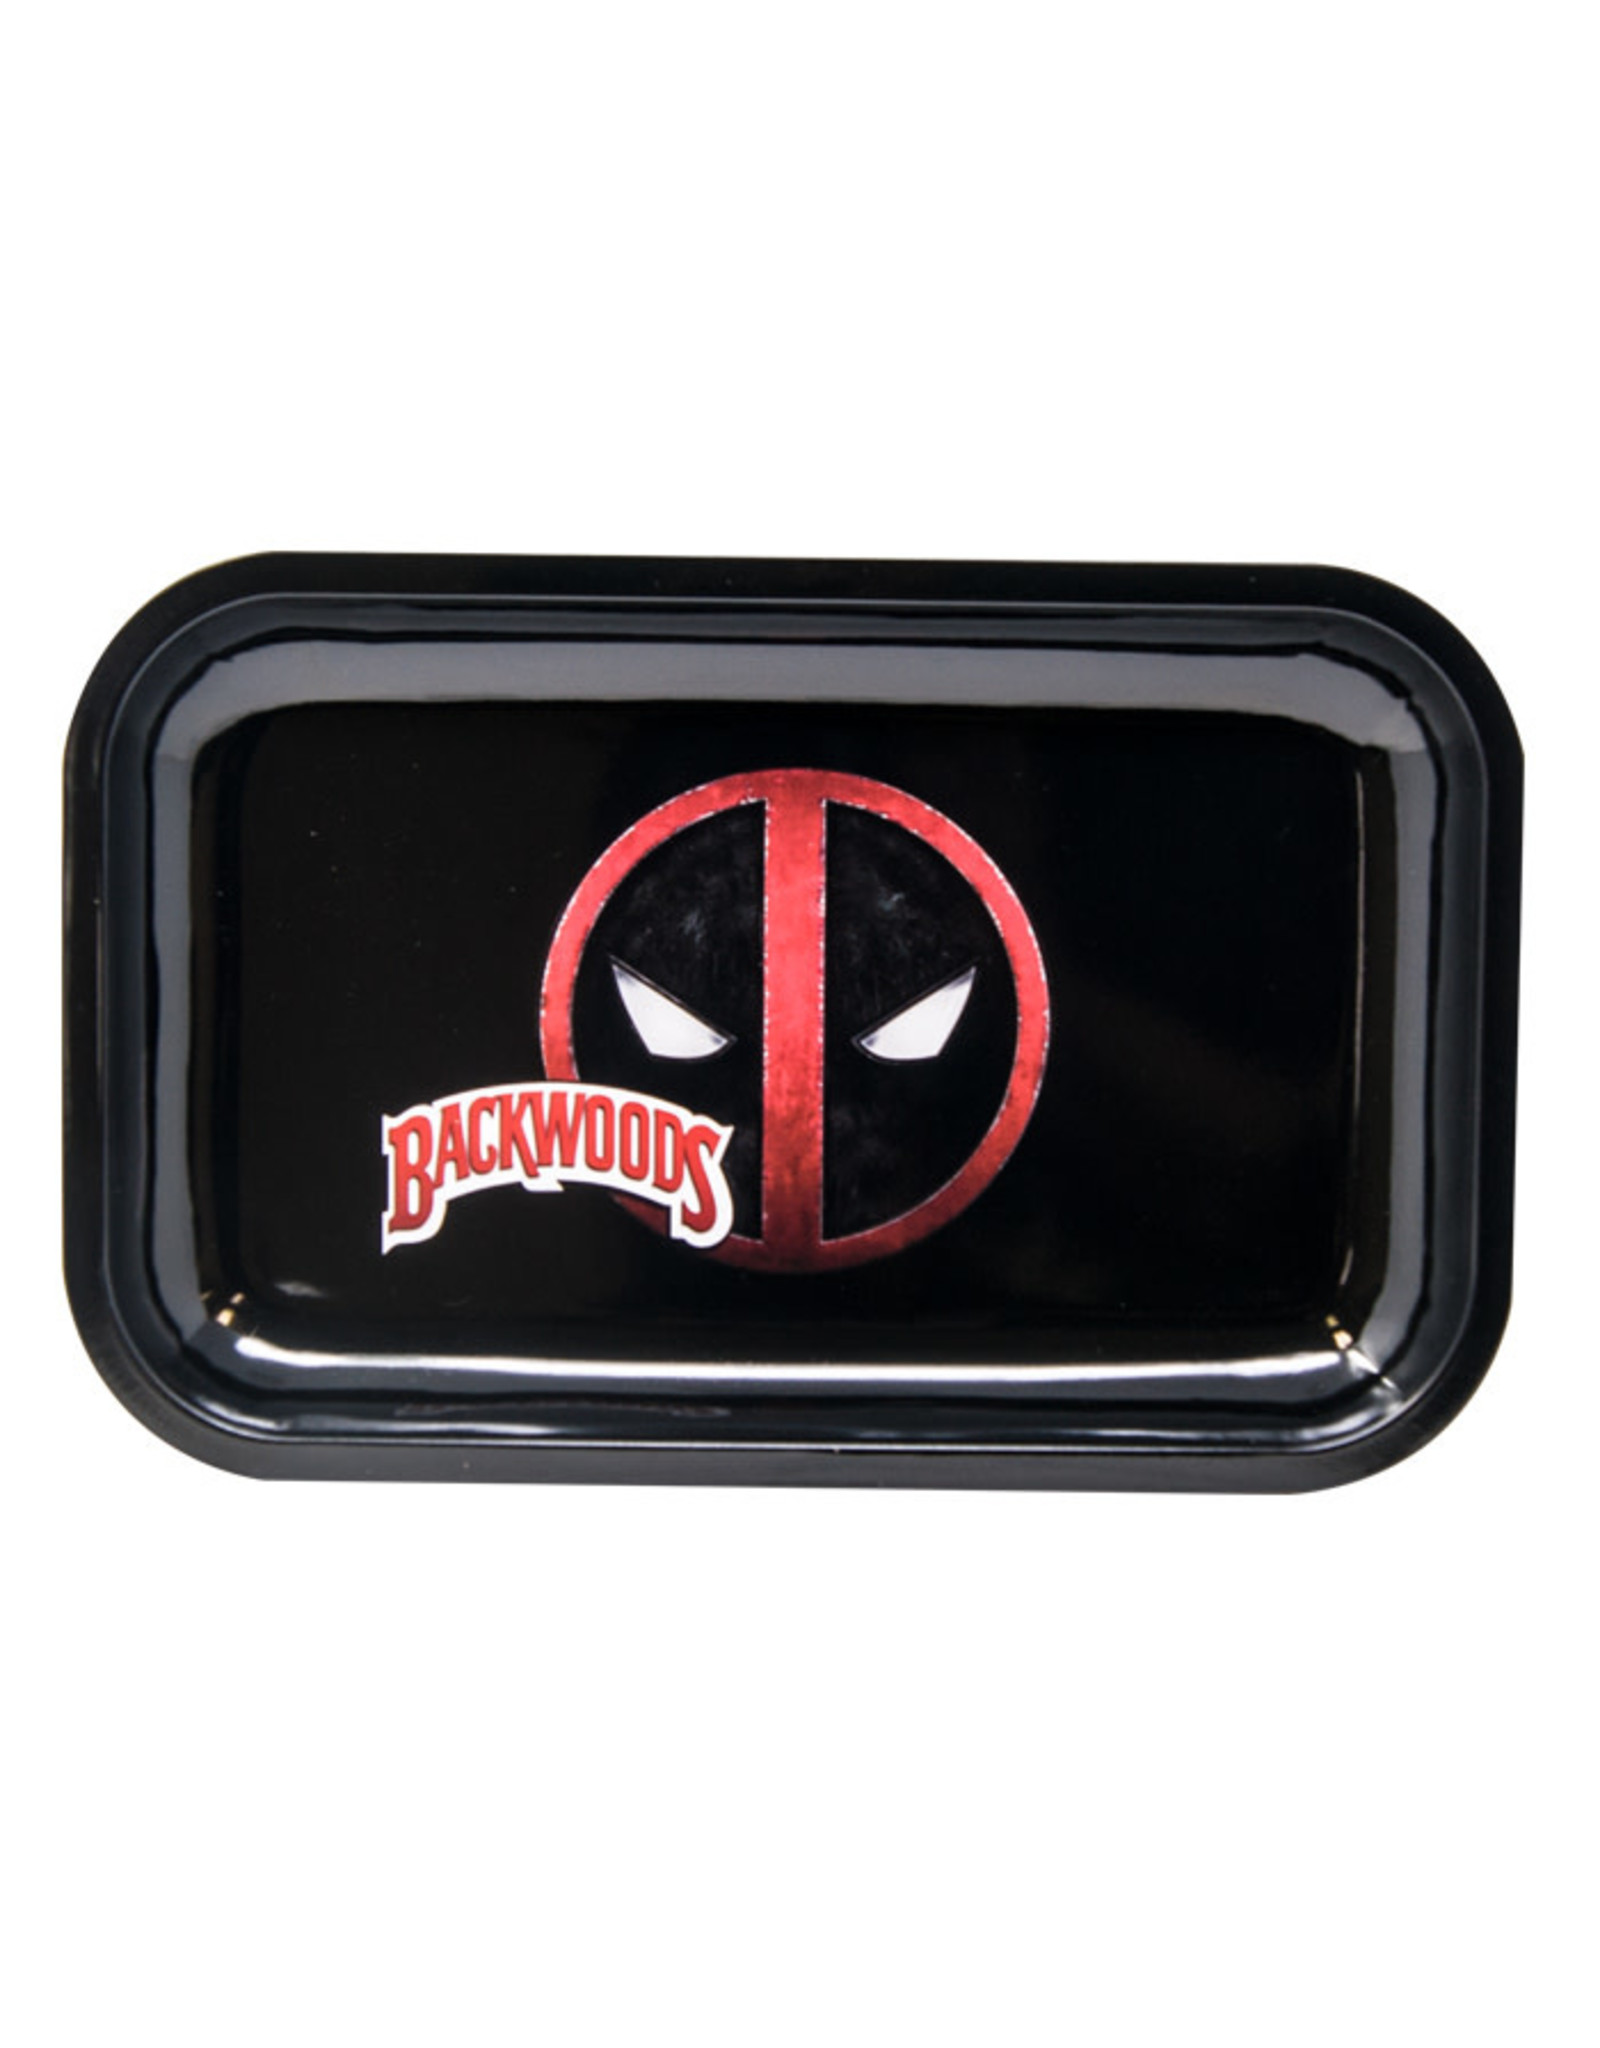 Large Rolling Tray